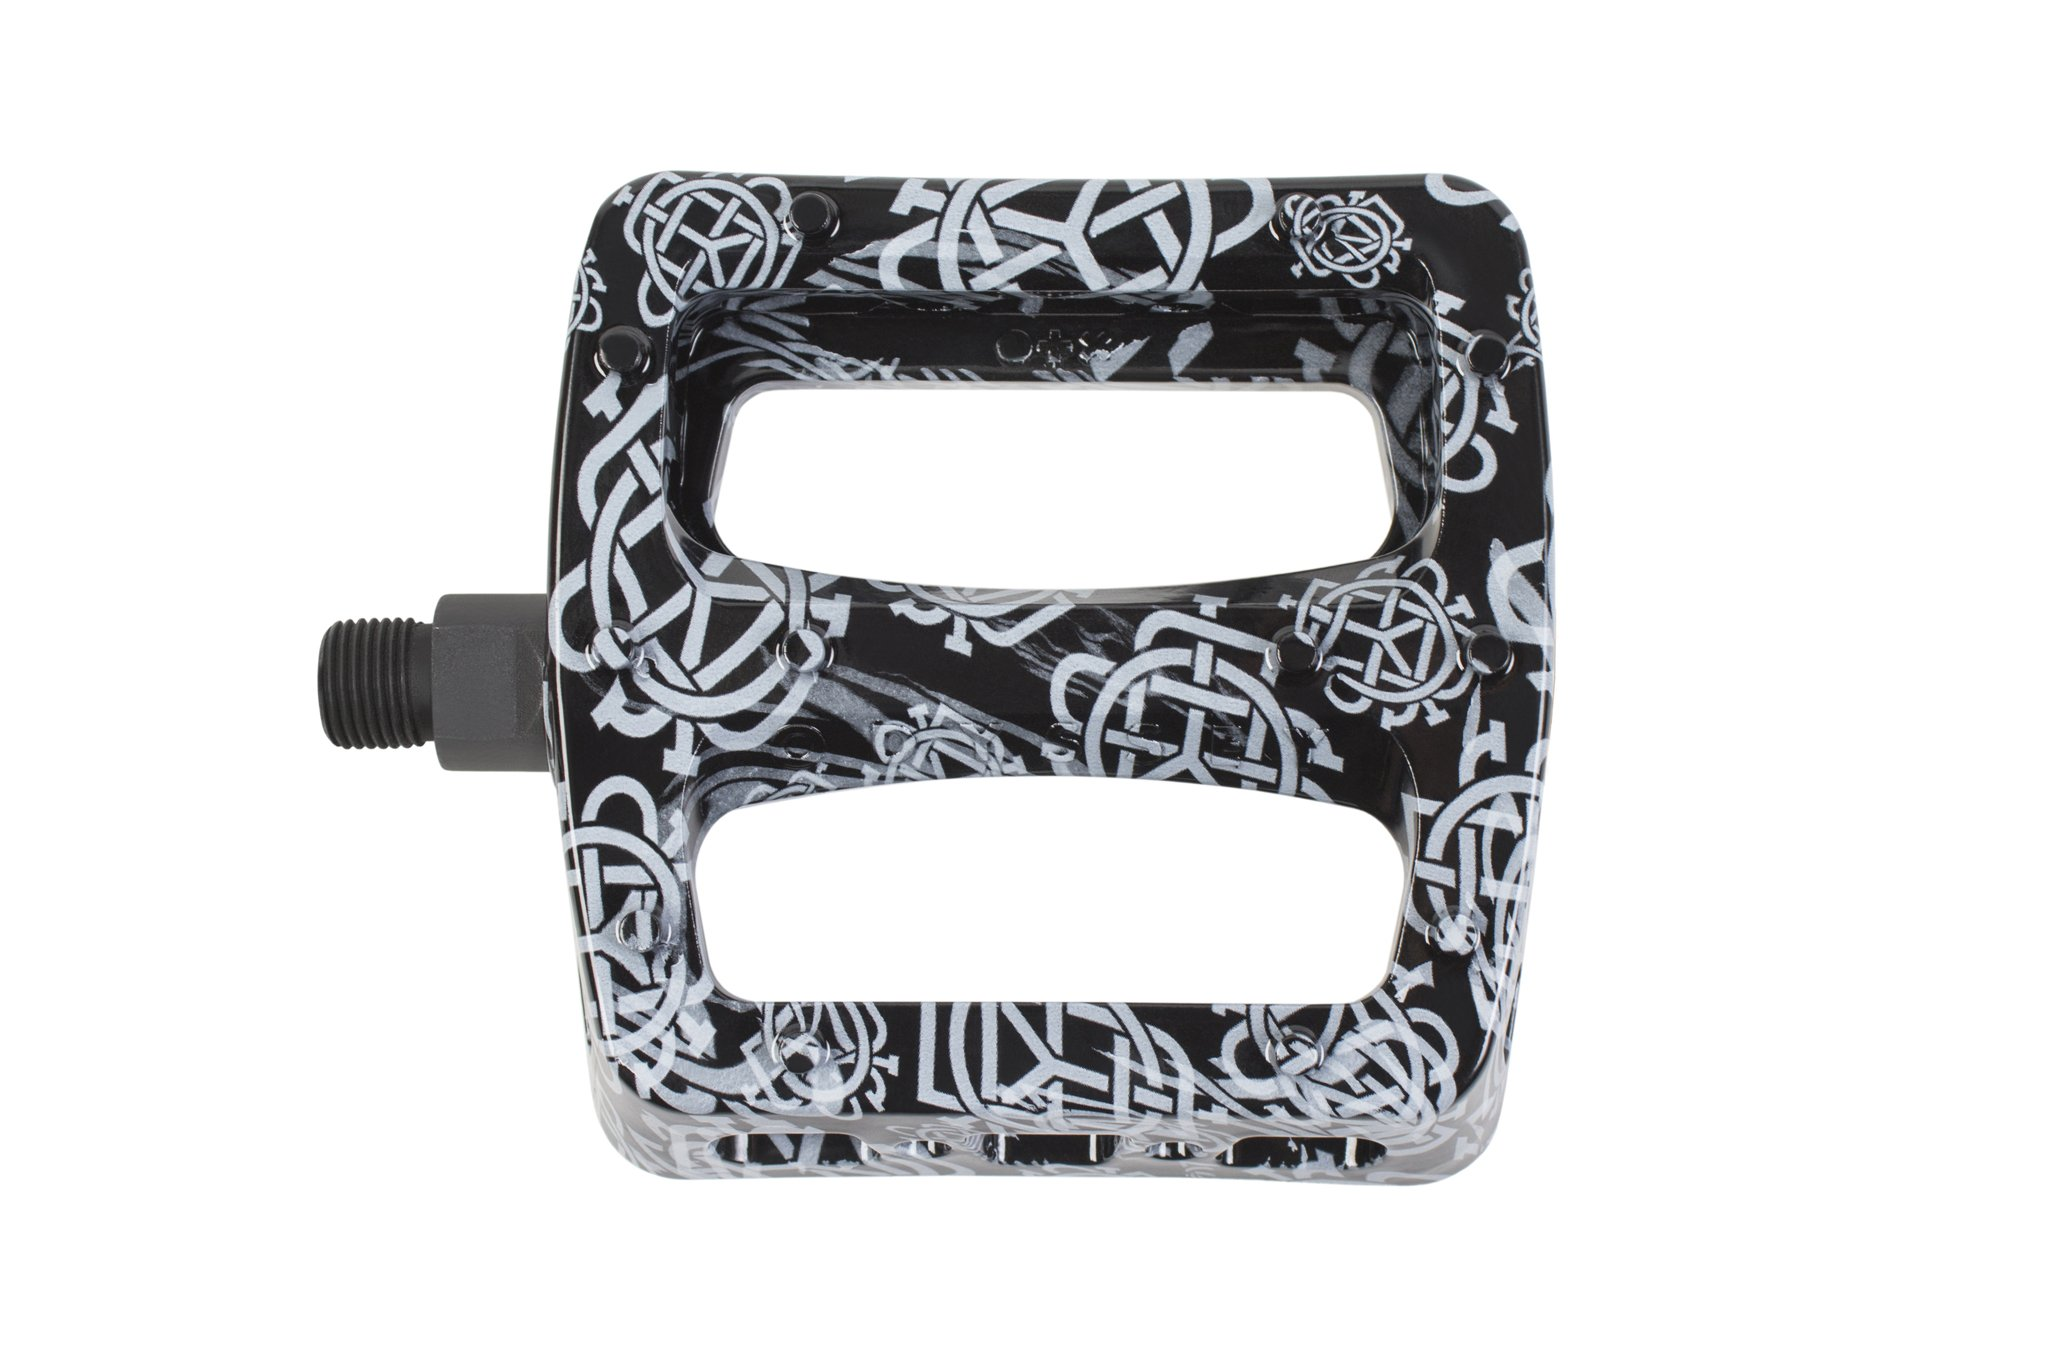 ODSY-Twisted-Pro-Pedal-Monogram-Allover-Black-Top-Web_5f7a52cd-d72c-440b-a147-cf68c3ce4158_2048x2048